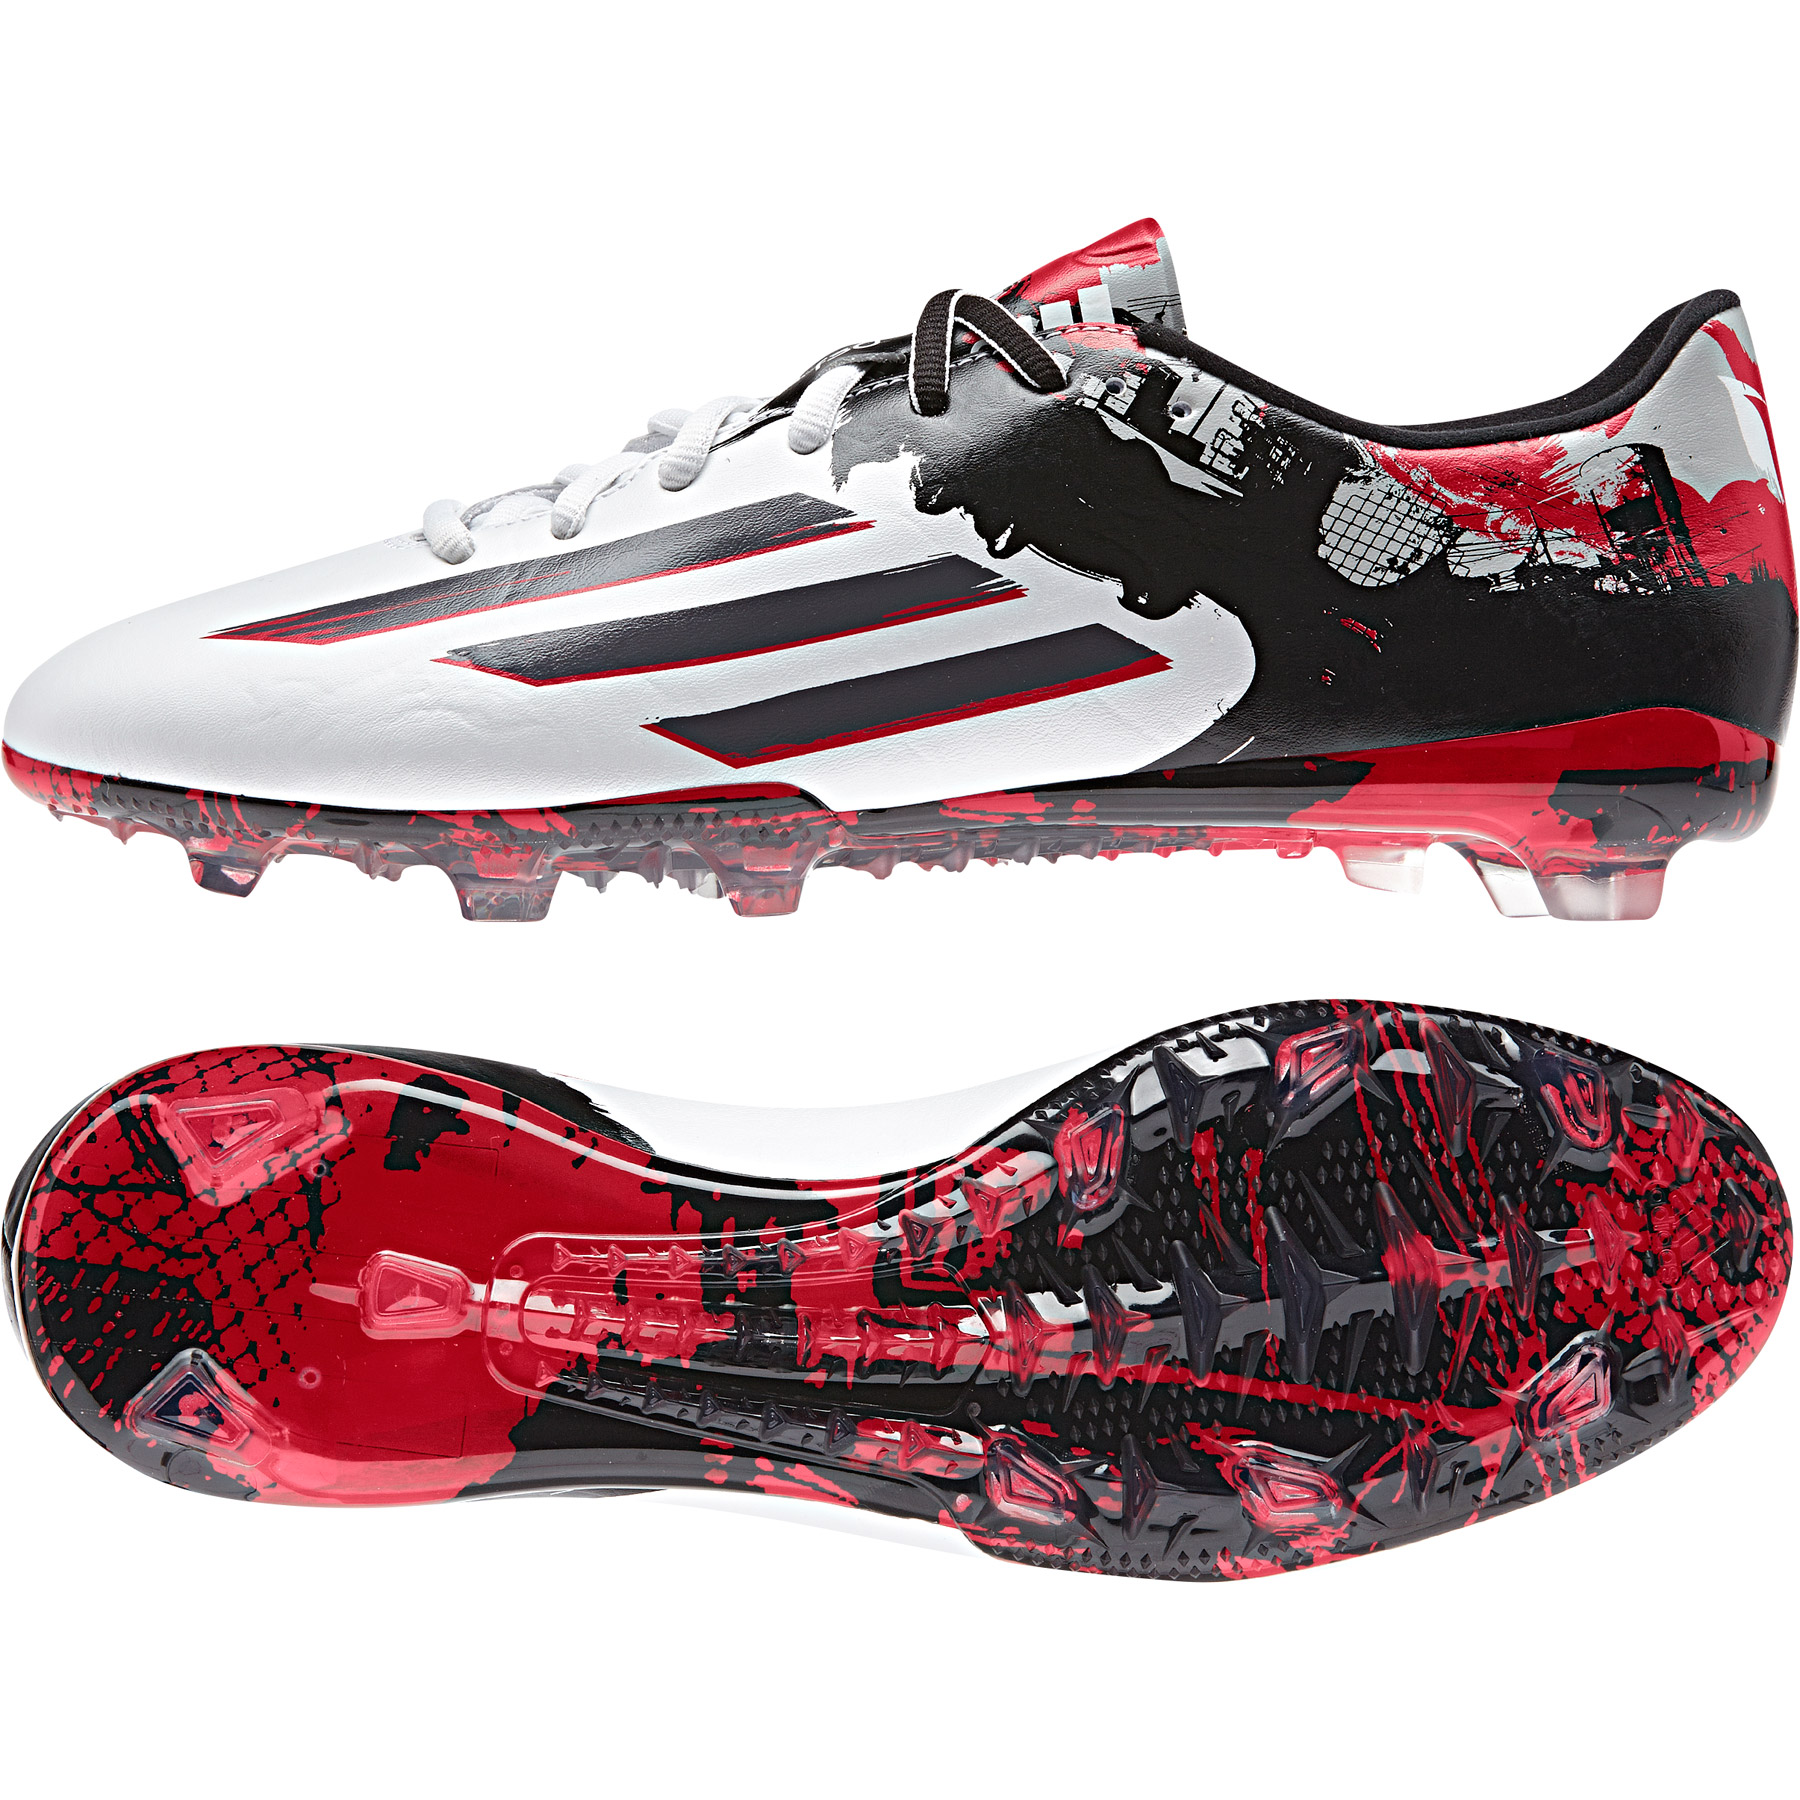 Adidas Messi 10.2 Firm Ground Football Boots White